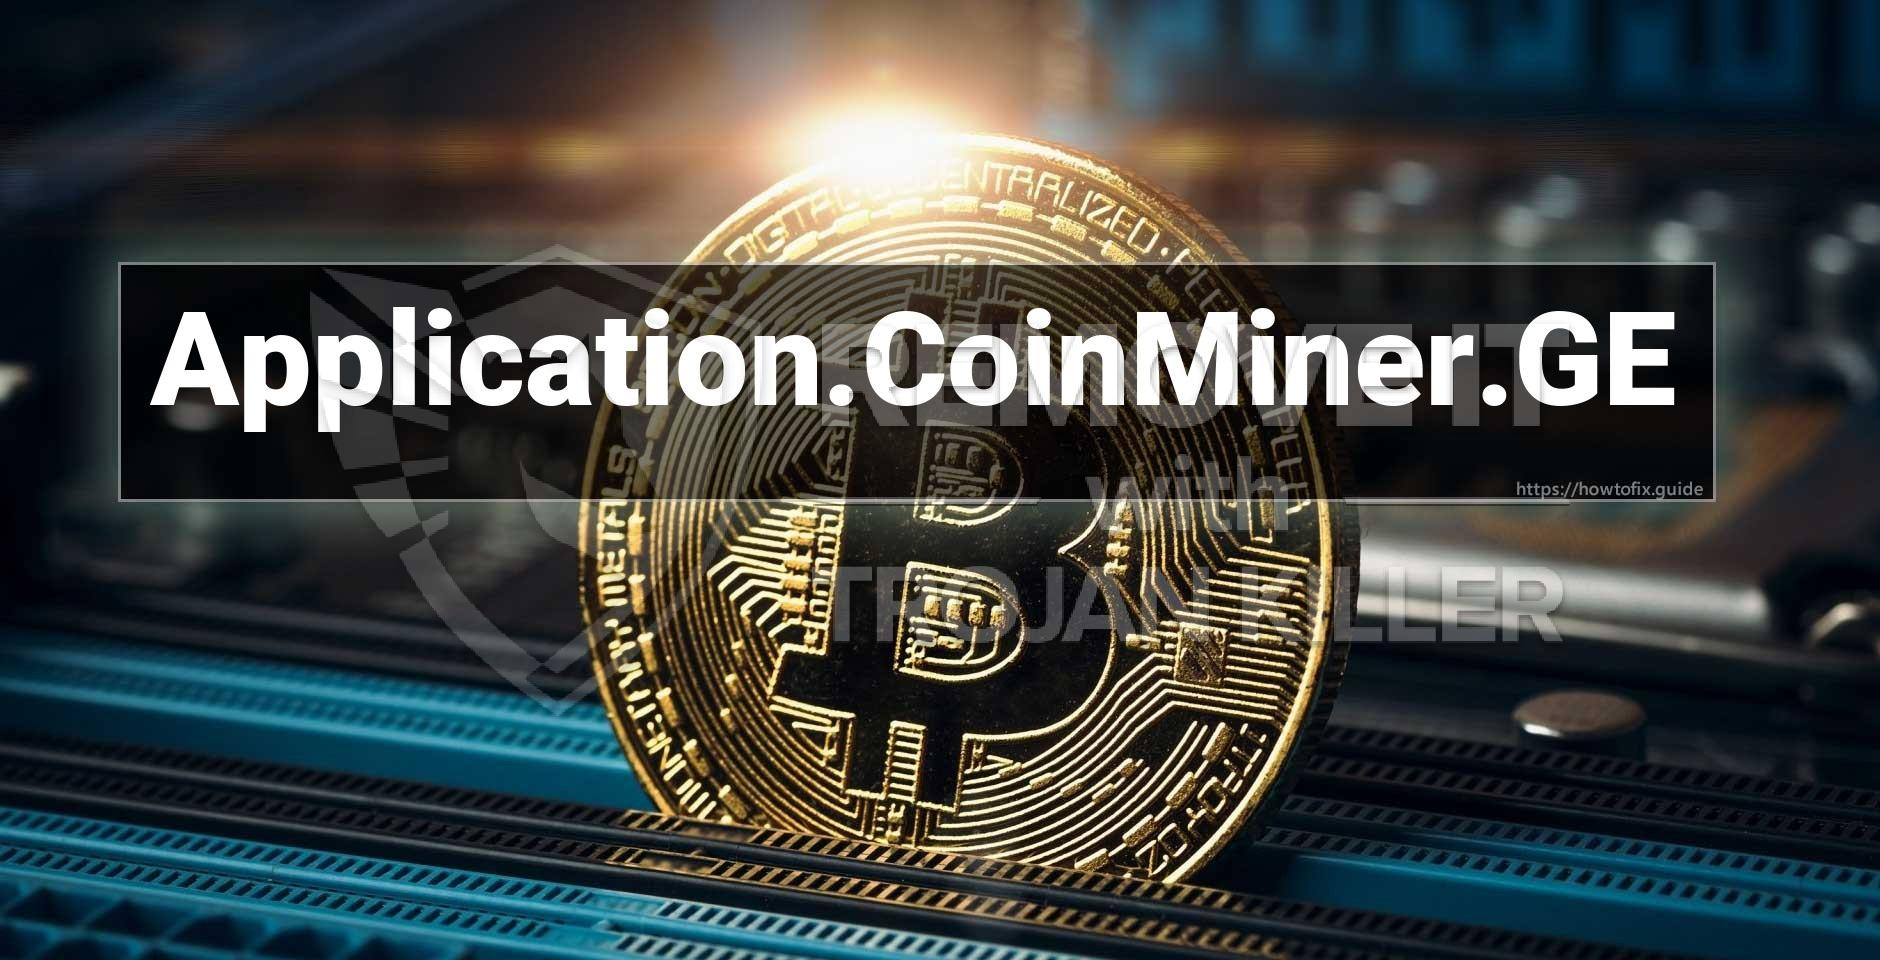 What is Application.CoinMiner.GE?